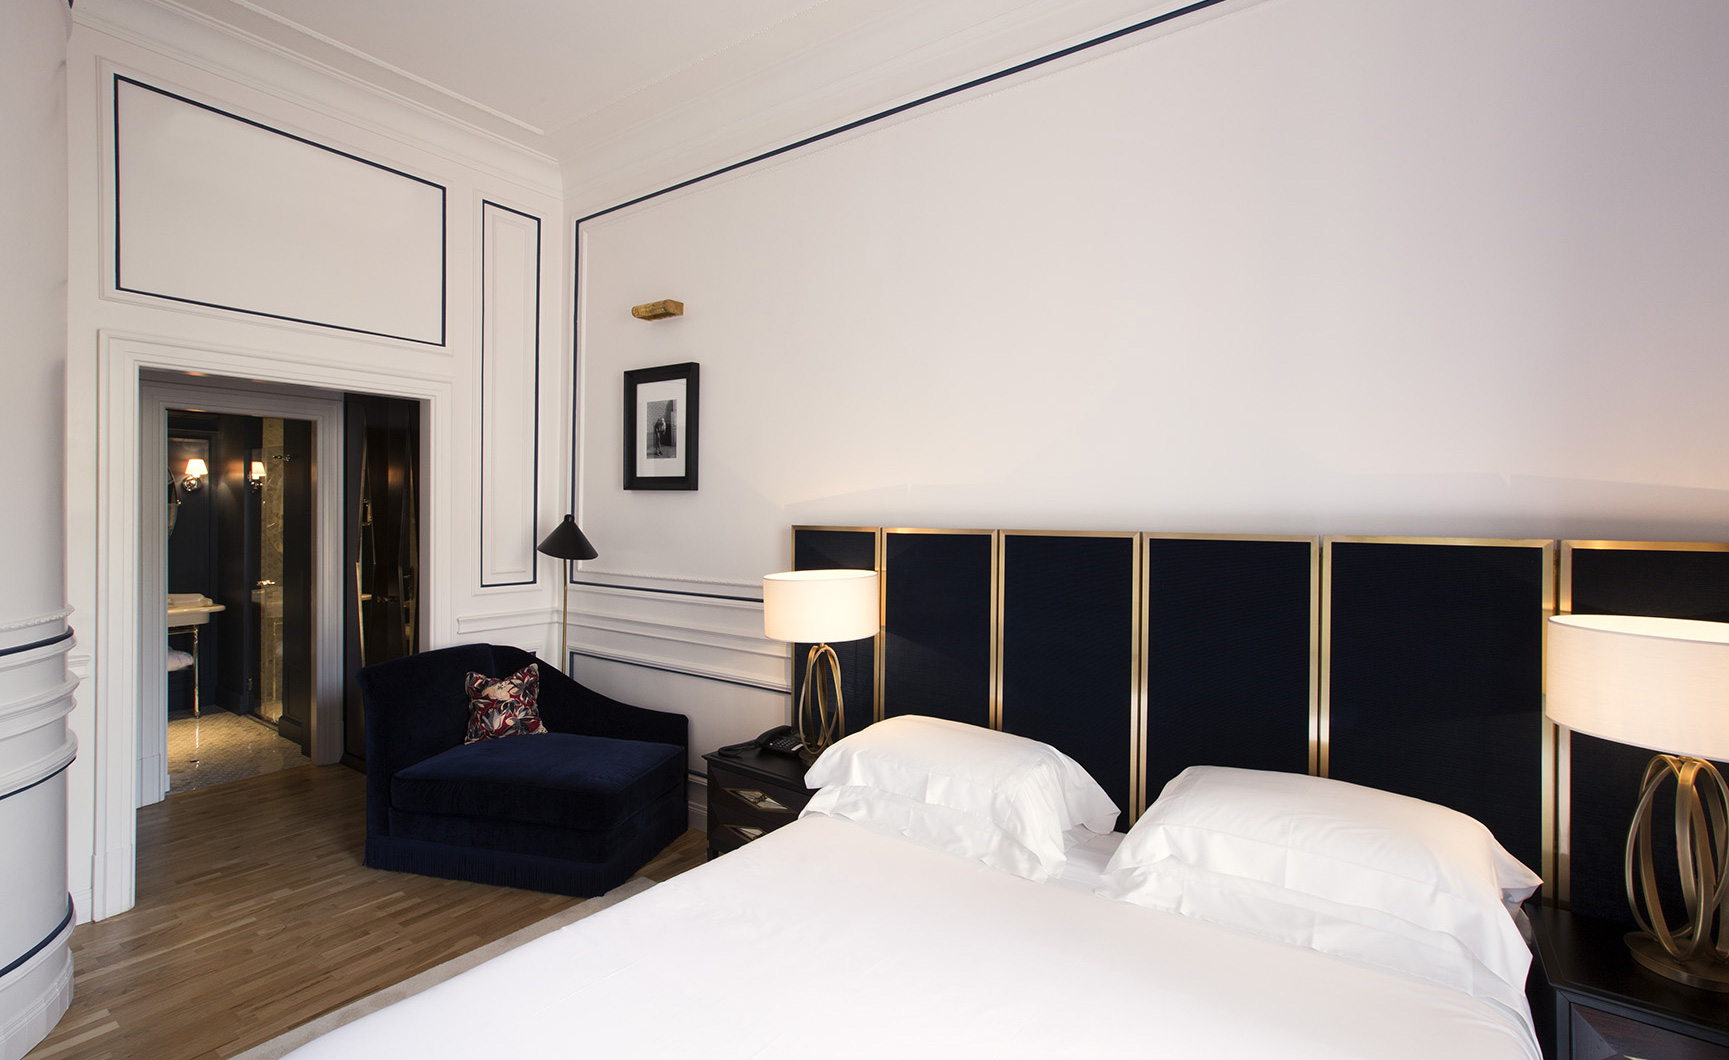 Palazzo dama hotel review rome italy wallpaper for Design hotels rome